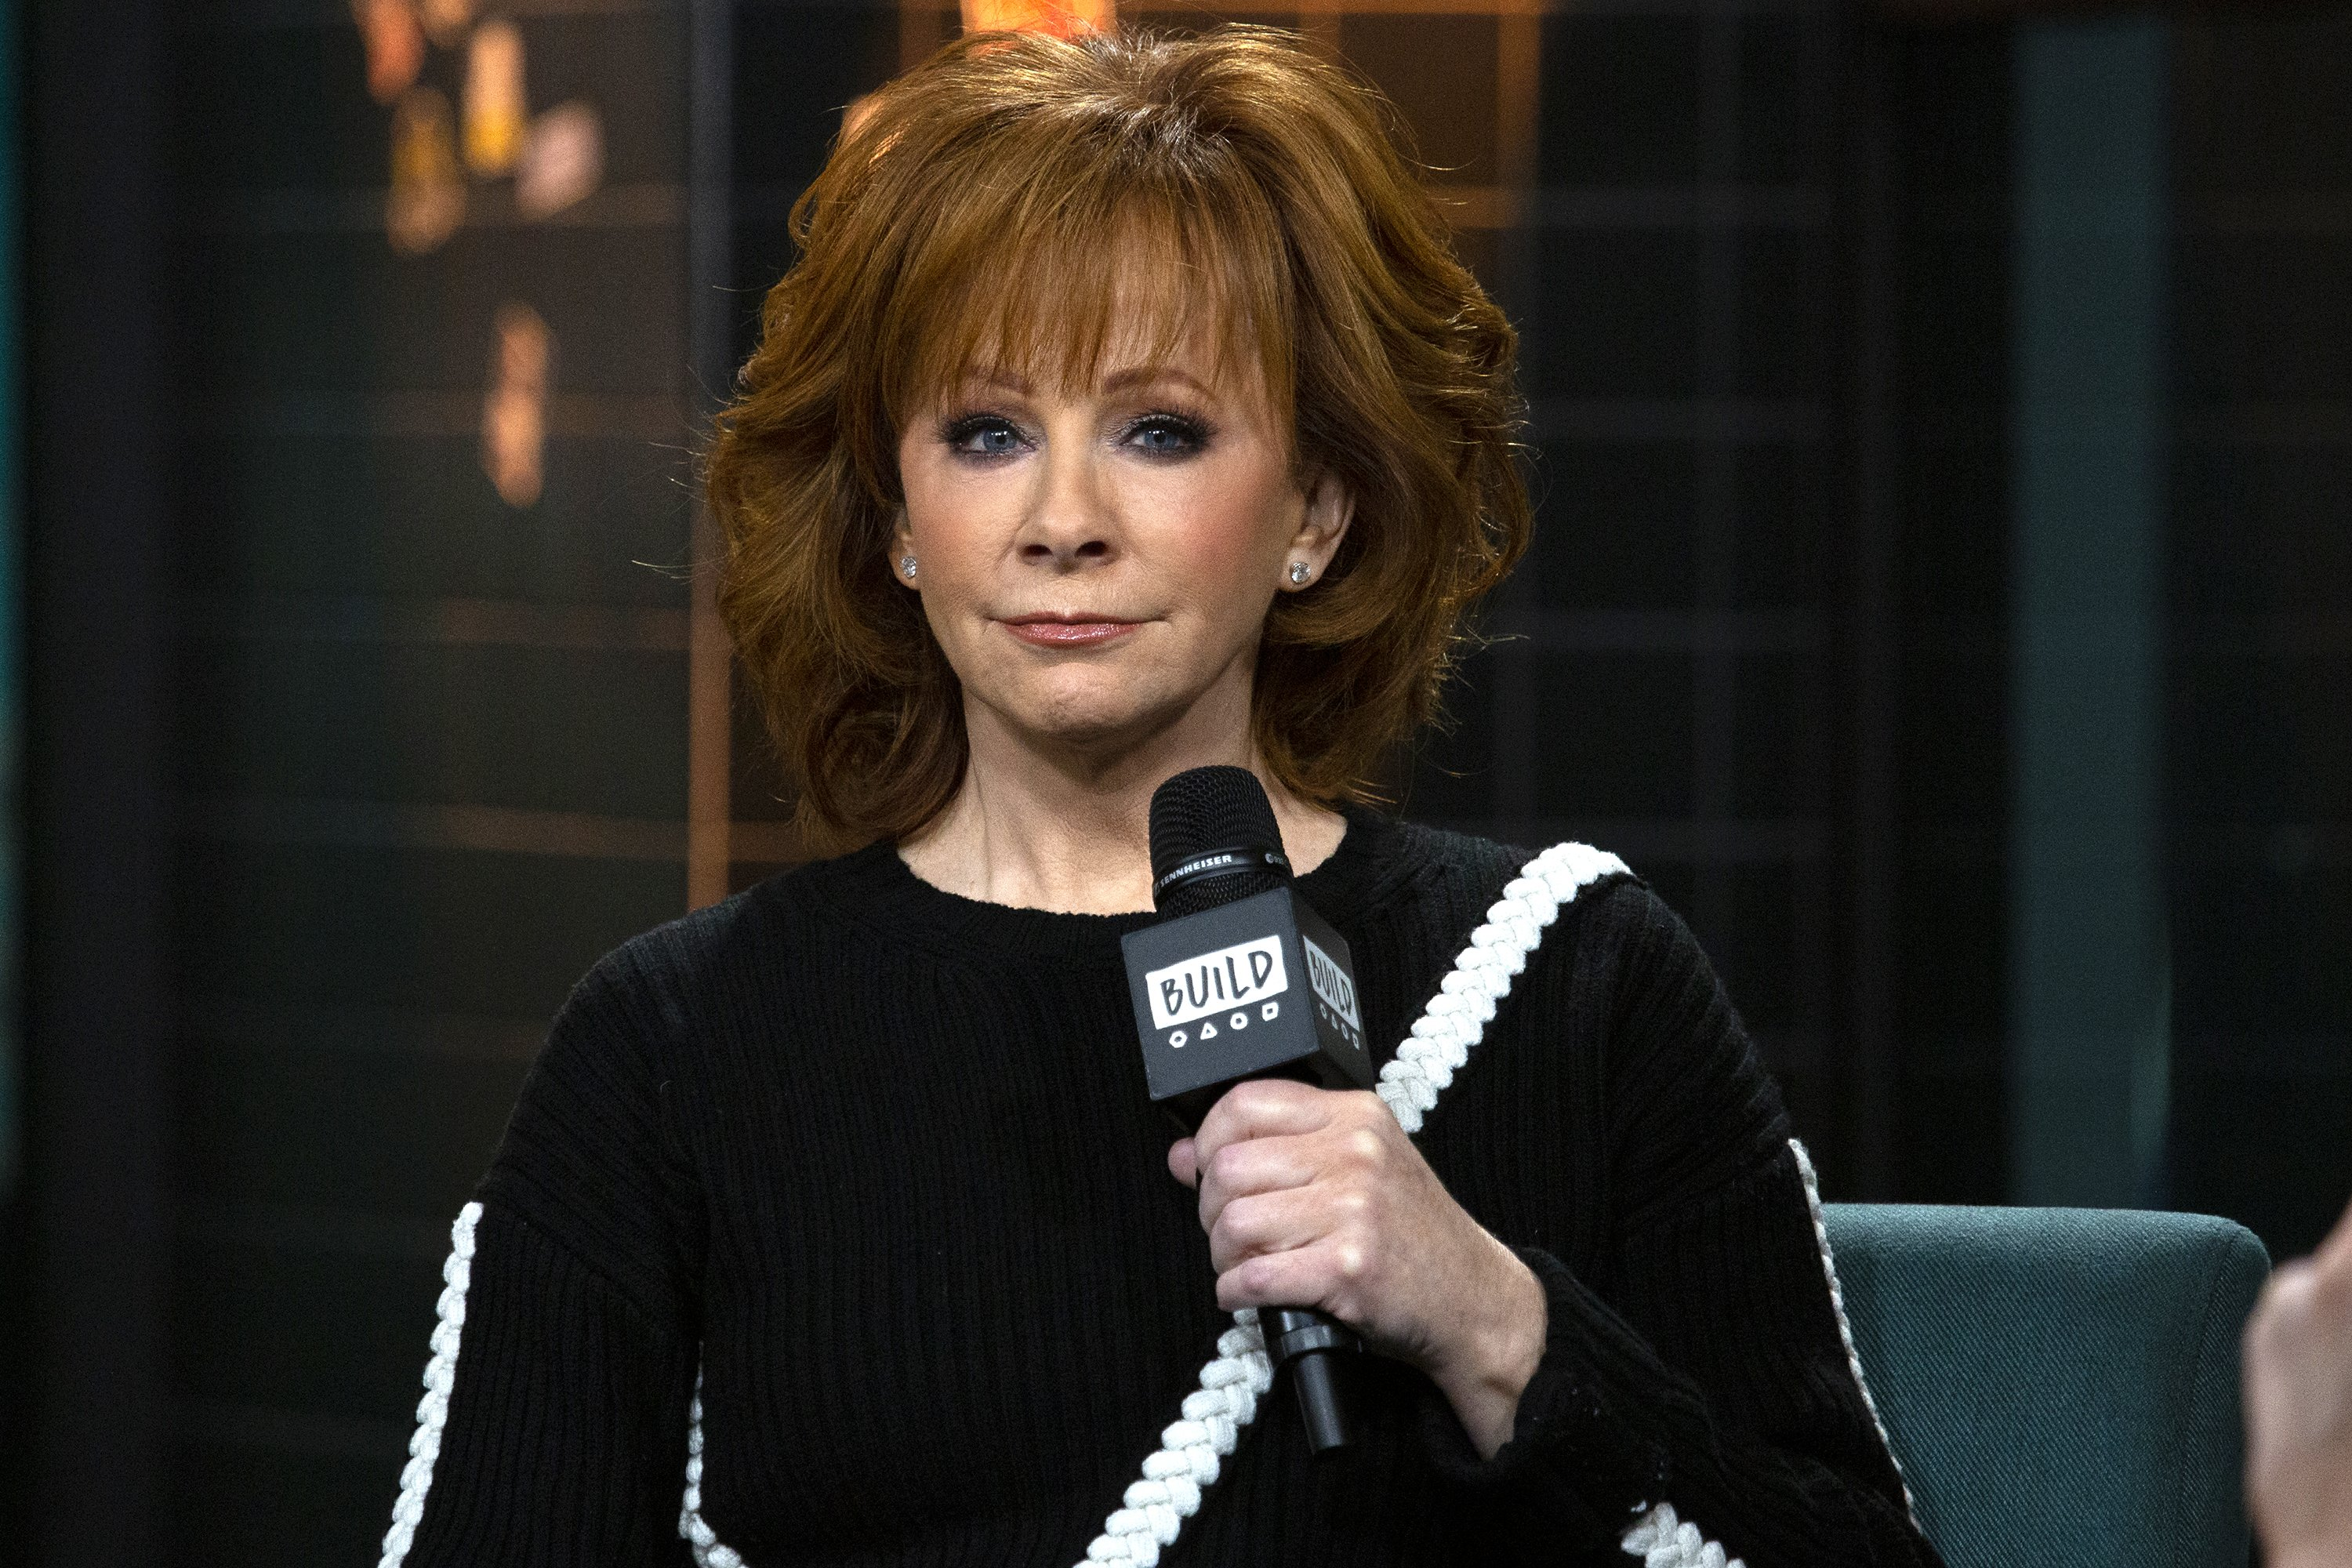 Reba McEntire, country singer | Photo: Getty Images